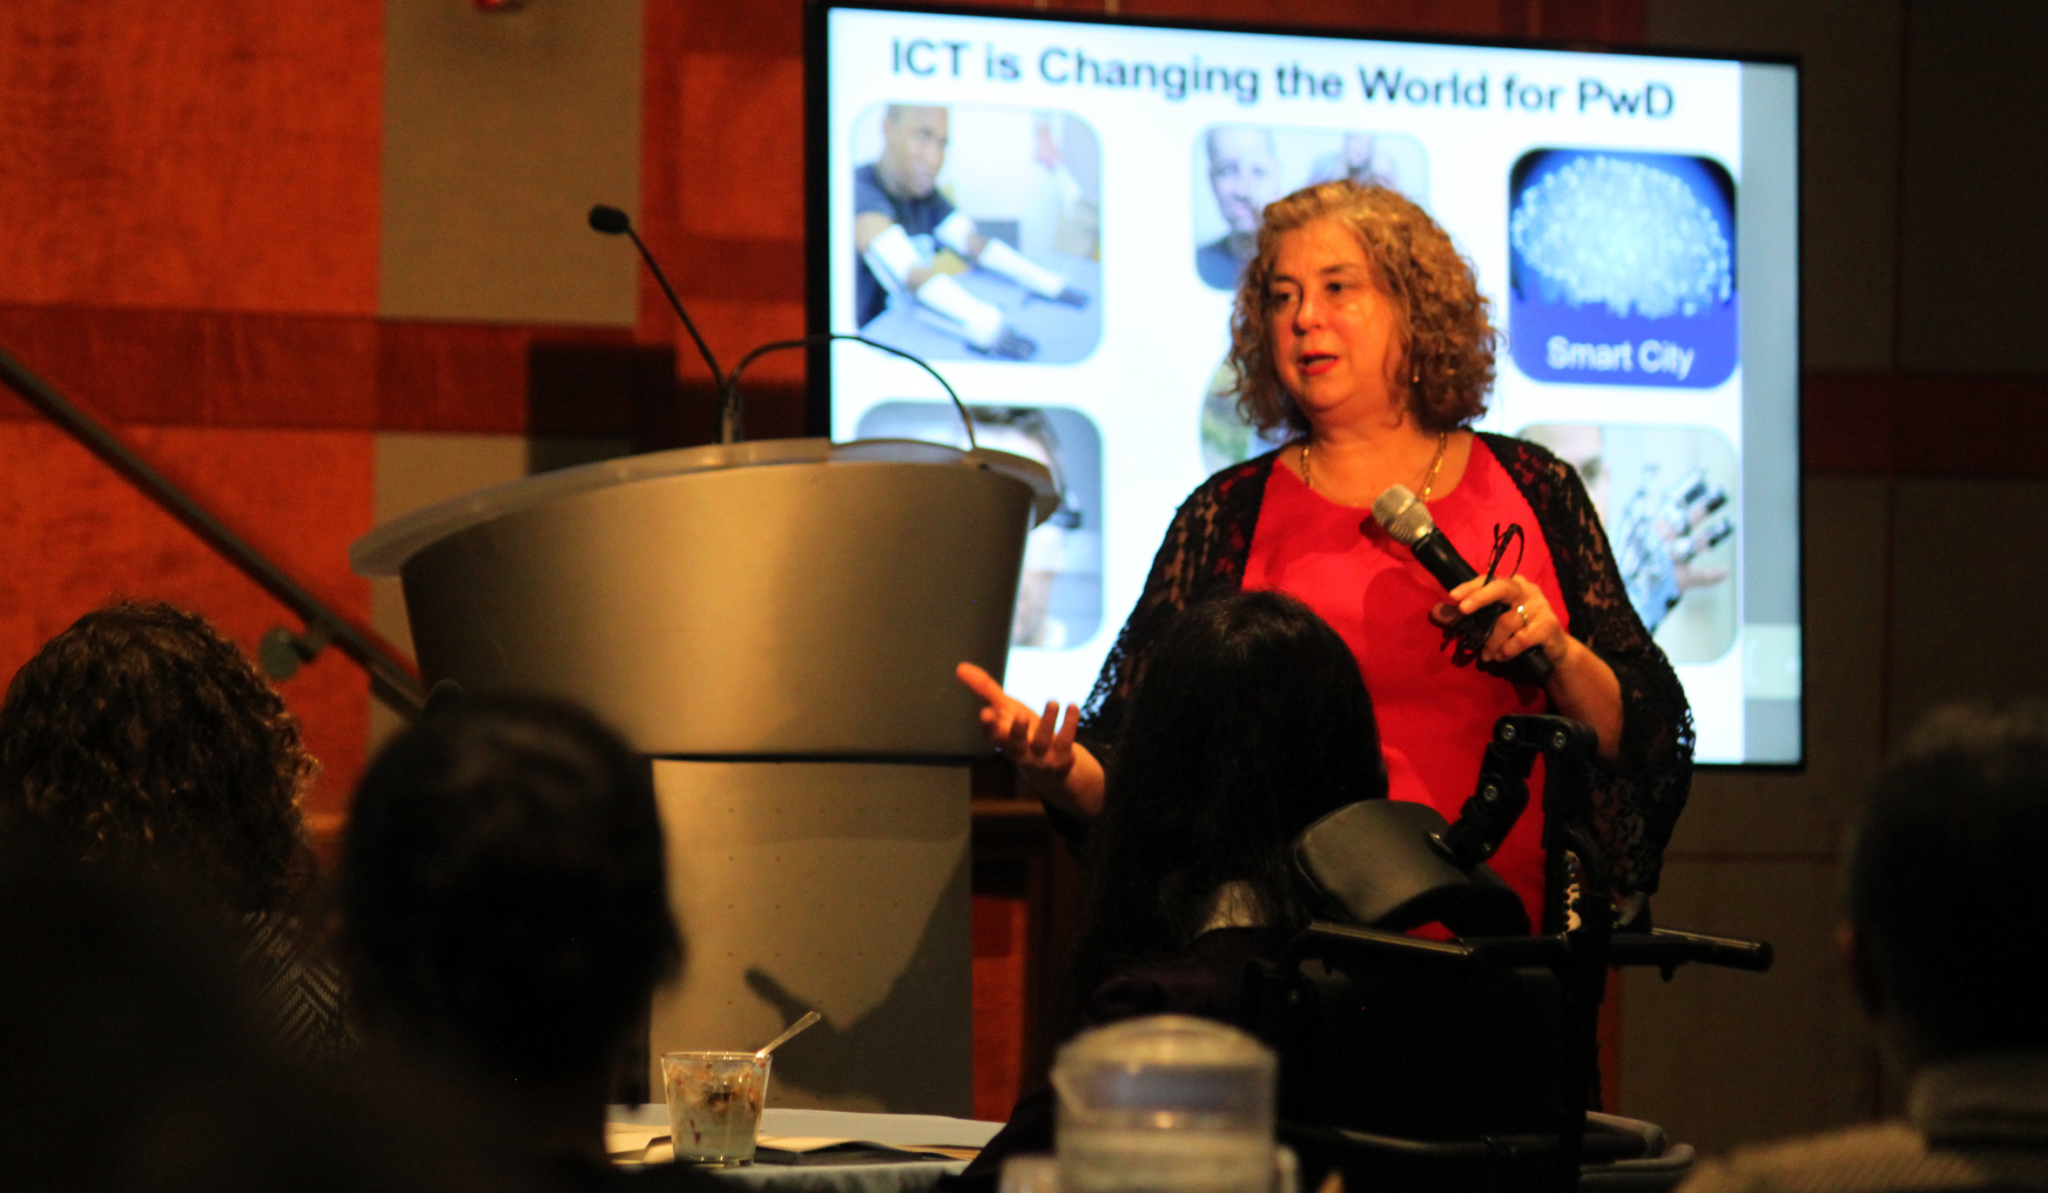 Photo of Debra Ruh Speaking at a Seminar for World Bank and IFC.